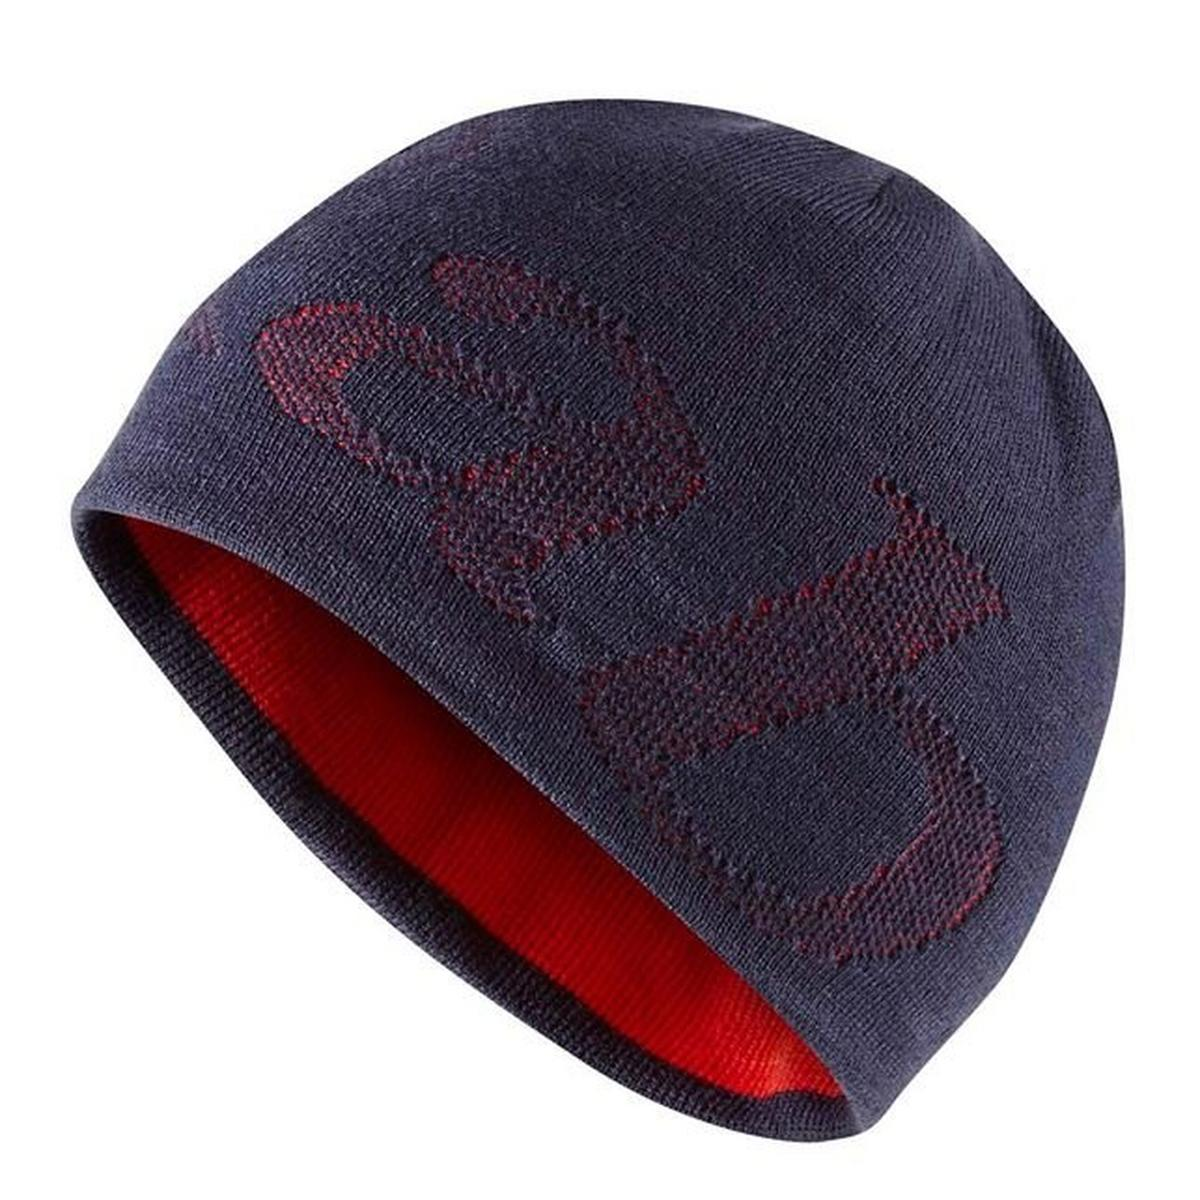 Rab Knockout Beanie - Deep Ink